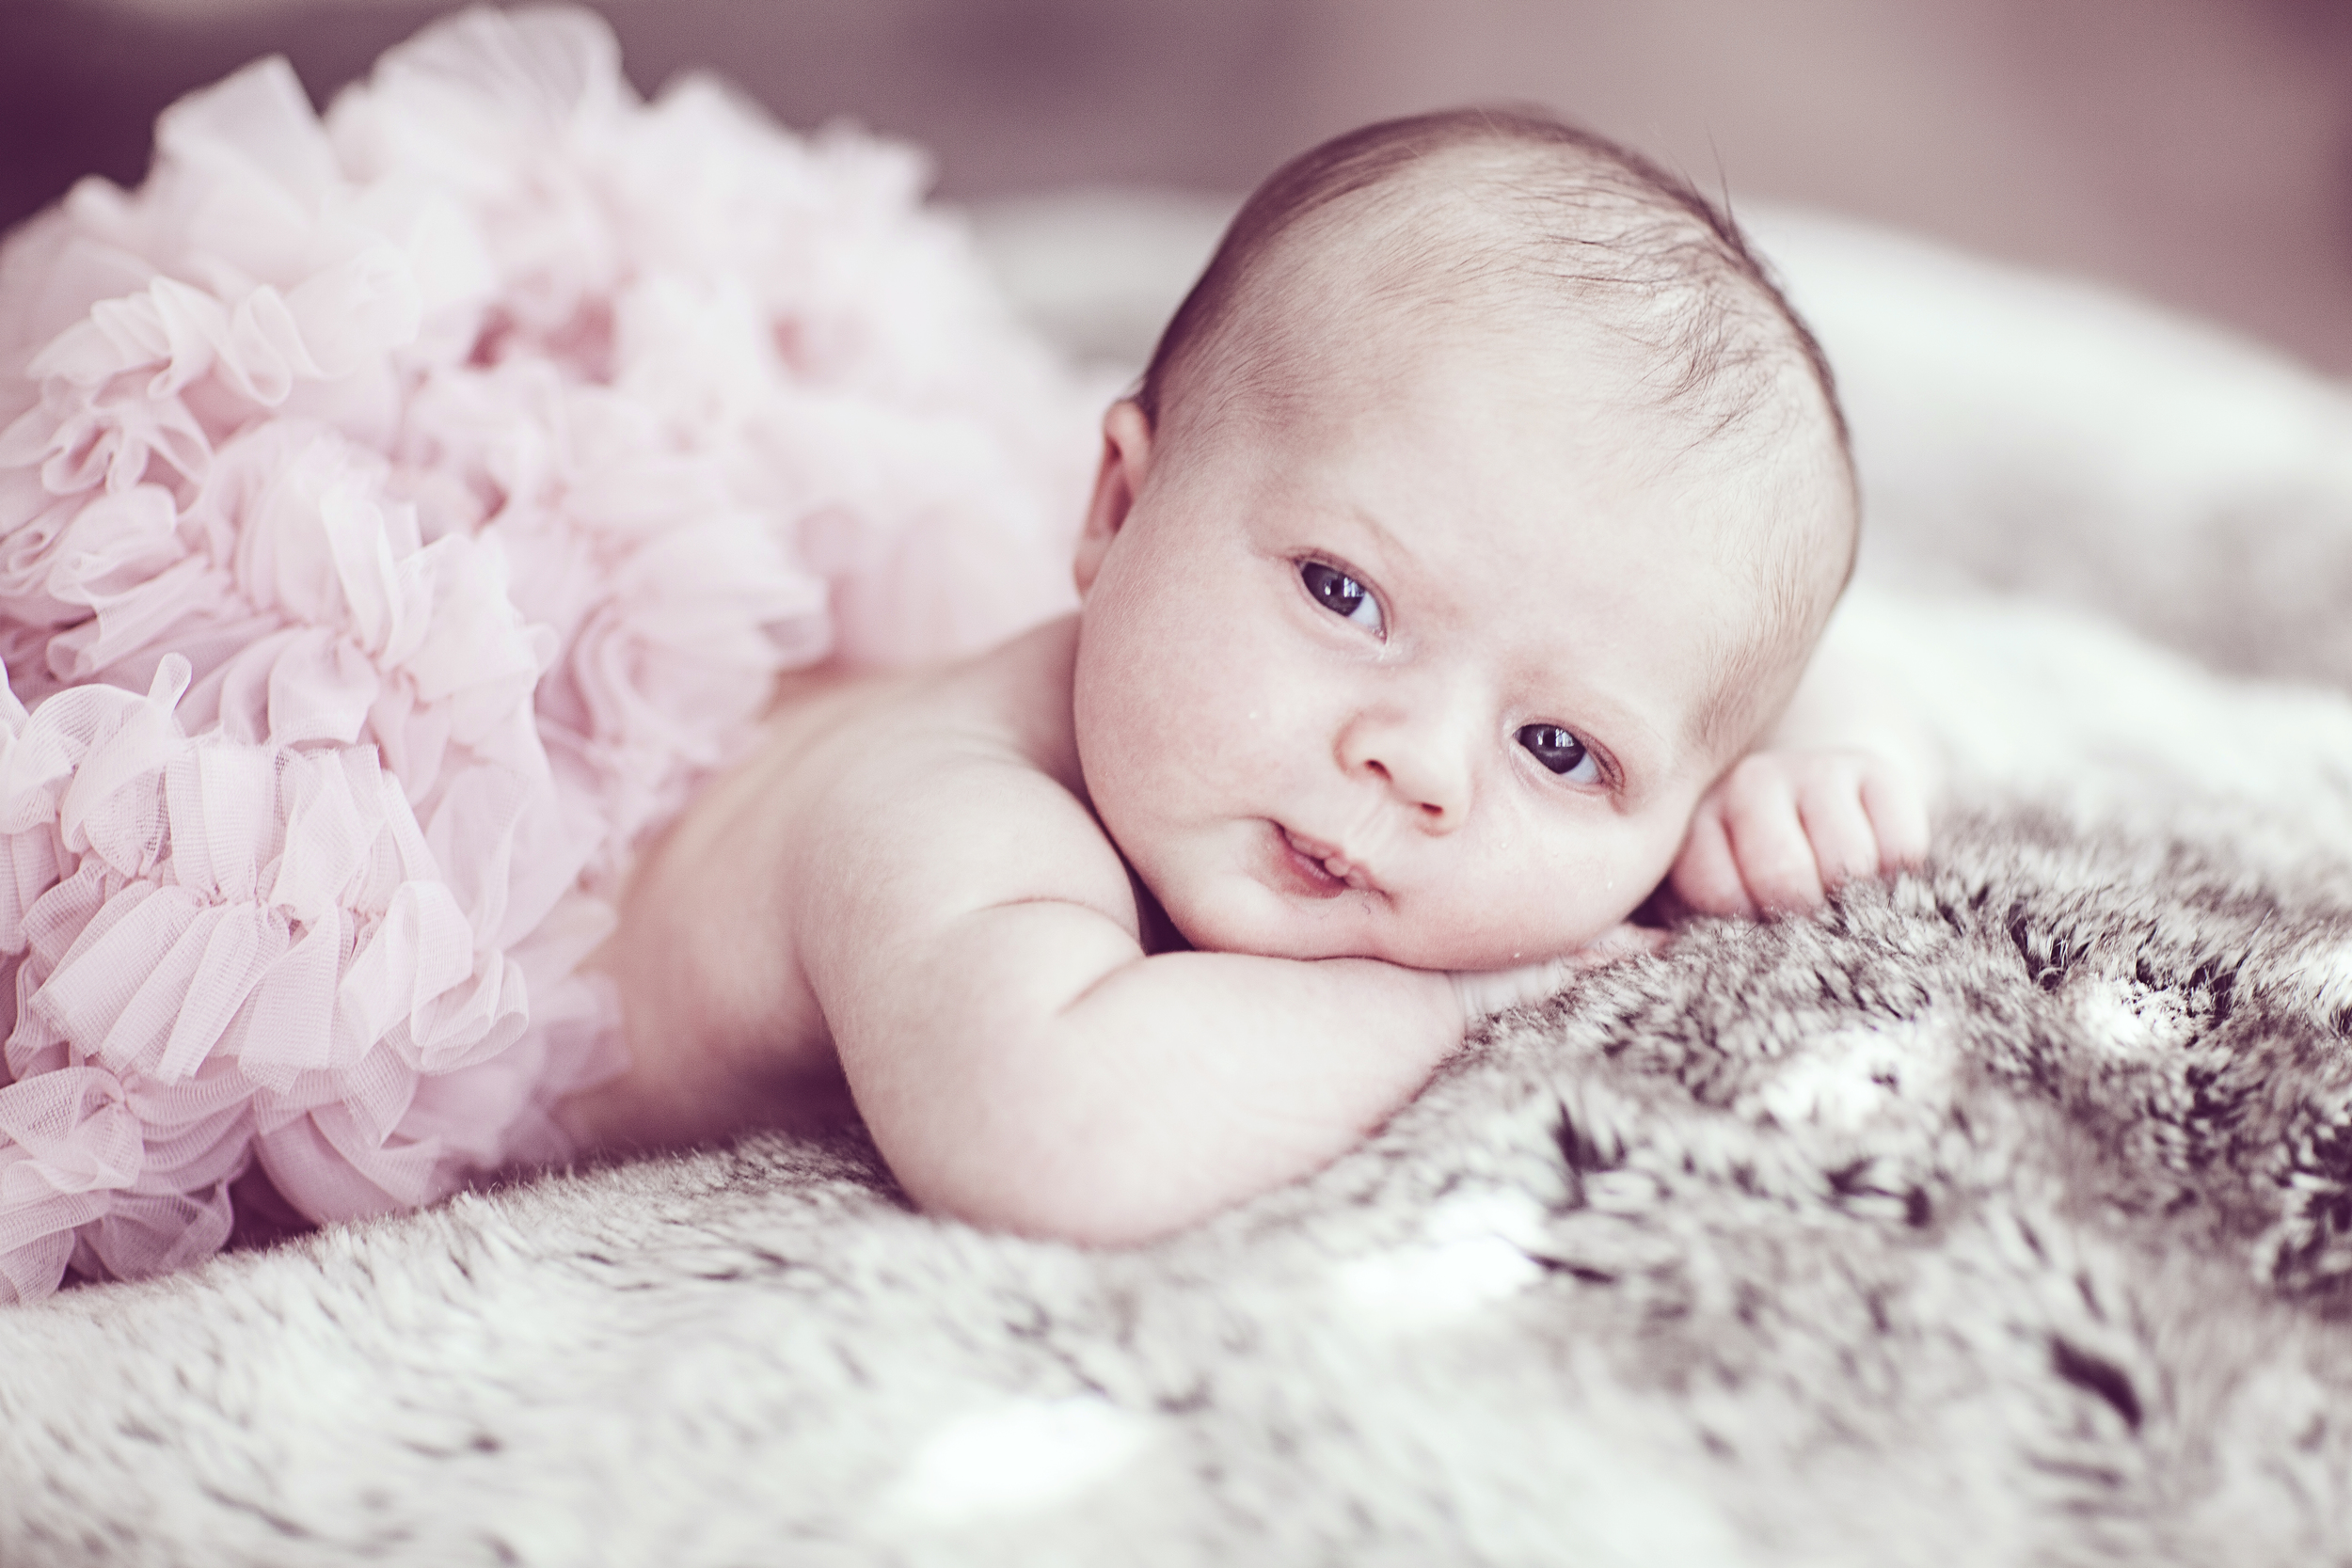 baby blue eyes sweet newborn lady girl tutu frilly pink cute smile soft portrait pose fingers atlanta